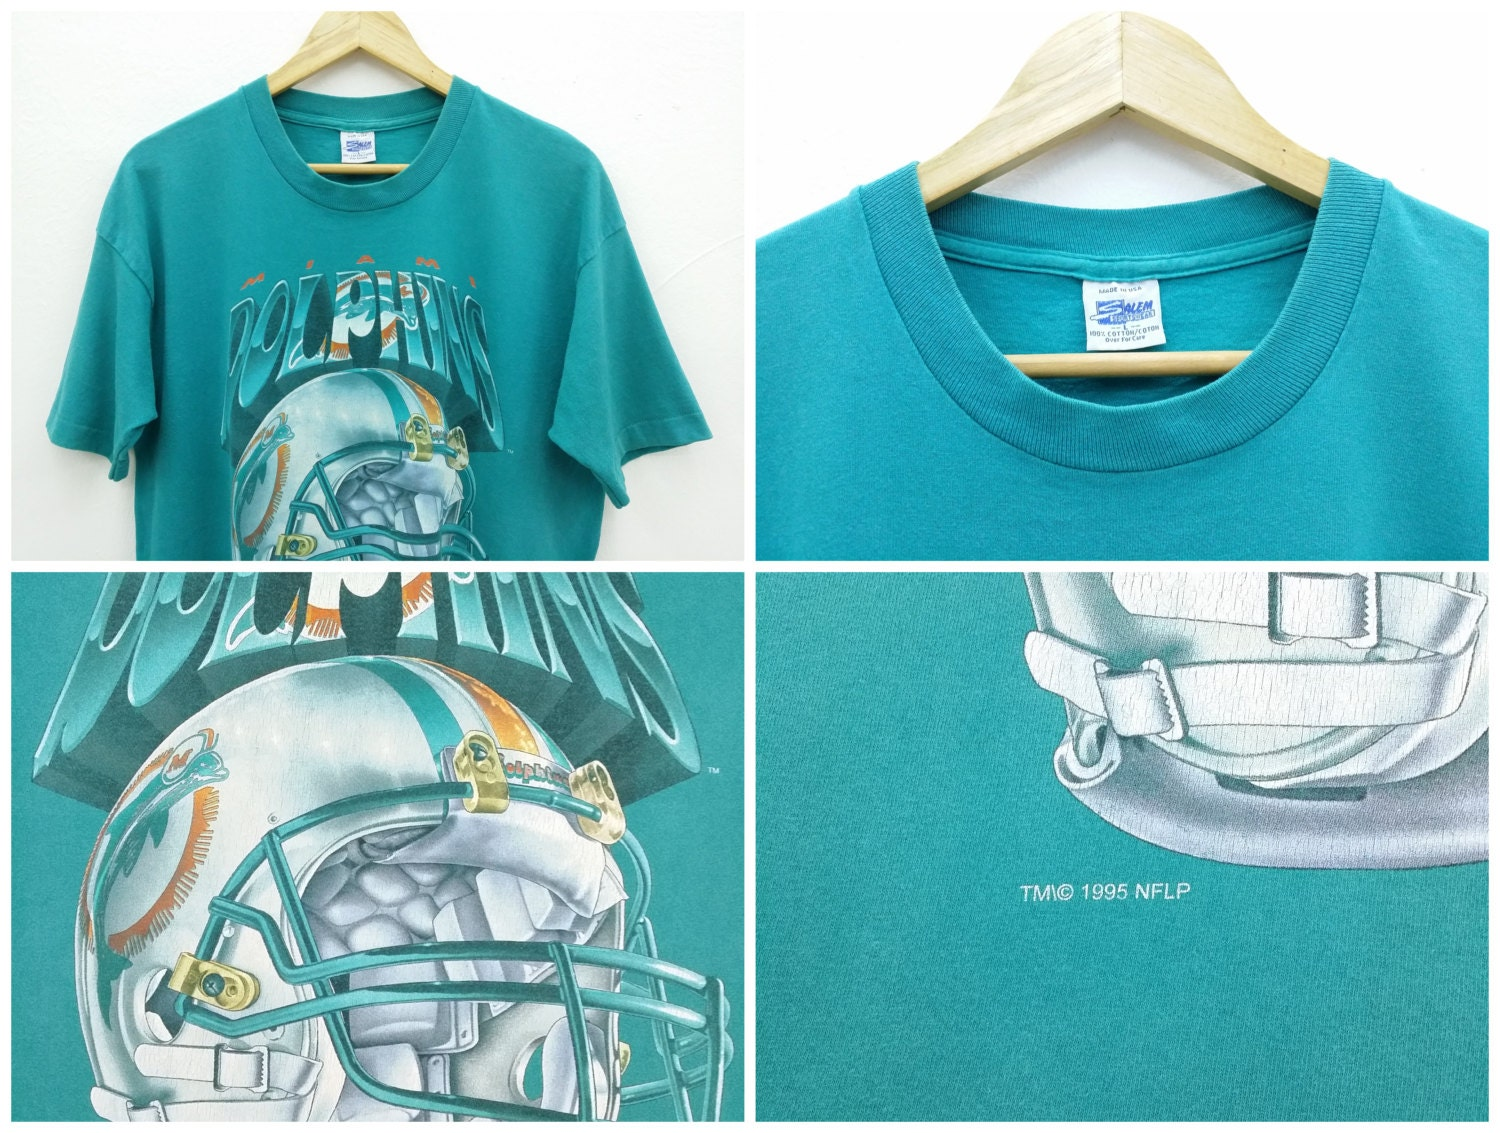 2f56afc7 Miami Dolphins Shirt Vintage 90's Miami Dolphins NFL American Football by  Salem Sportswear Shirt Made in USA Size L